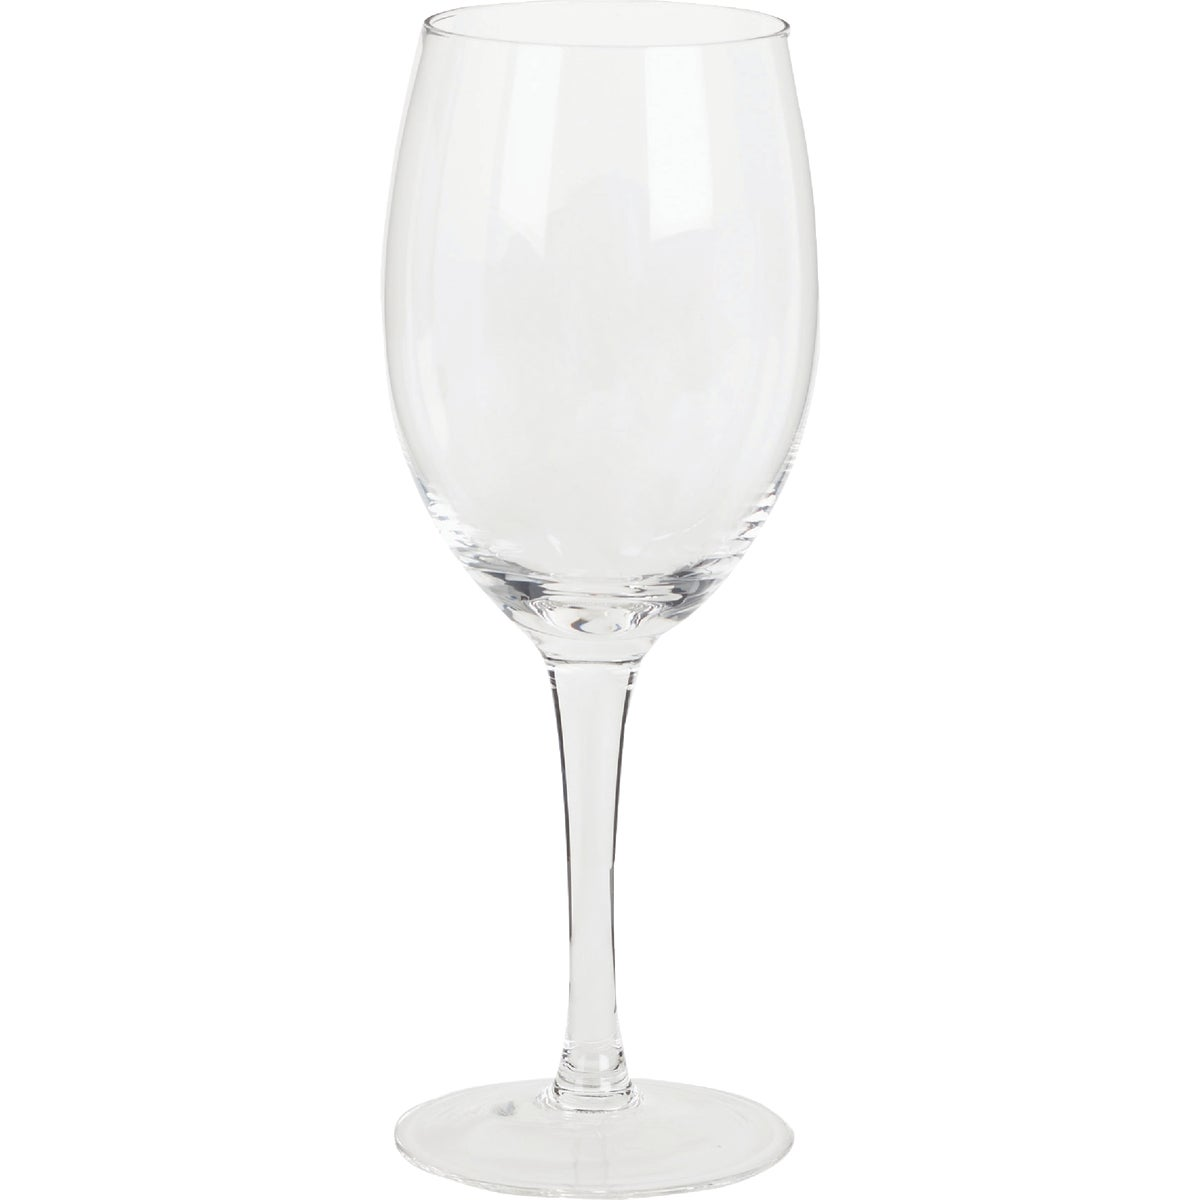 8.5OZ WINE GLASS - 87548L12 by Anchor Hckg Roberts